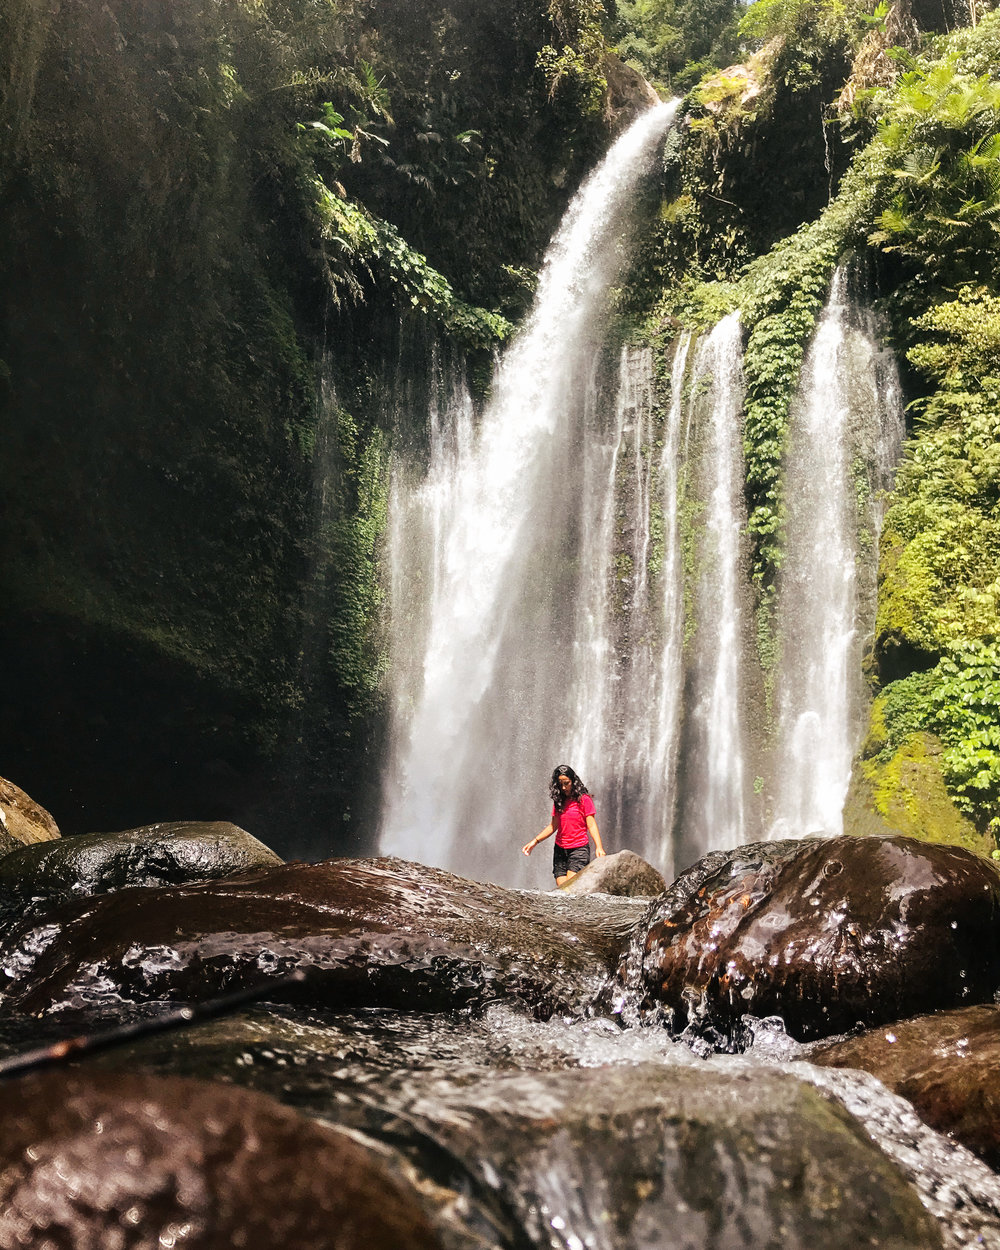 The Tiu Kelep waterfall is so much more majestic than it seems in photos!